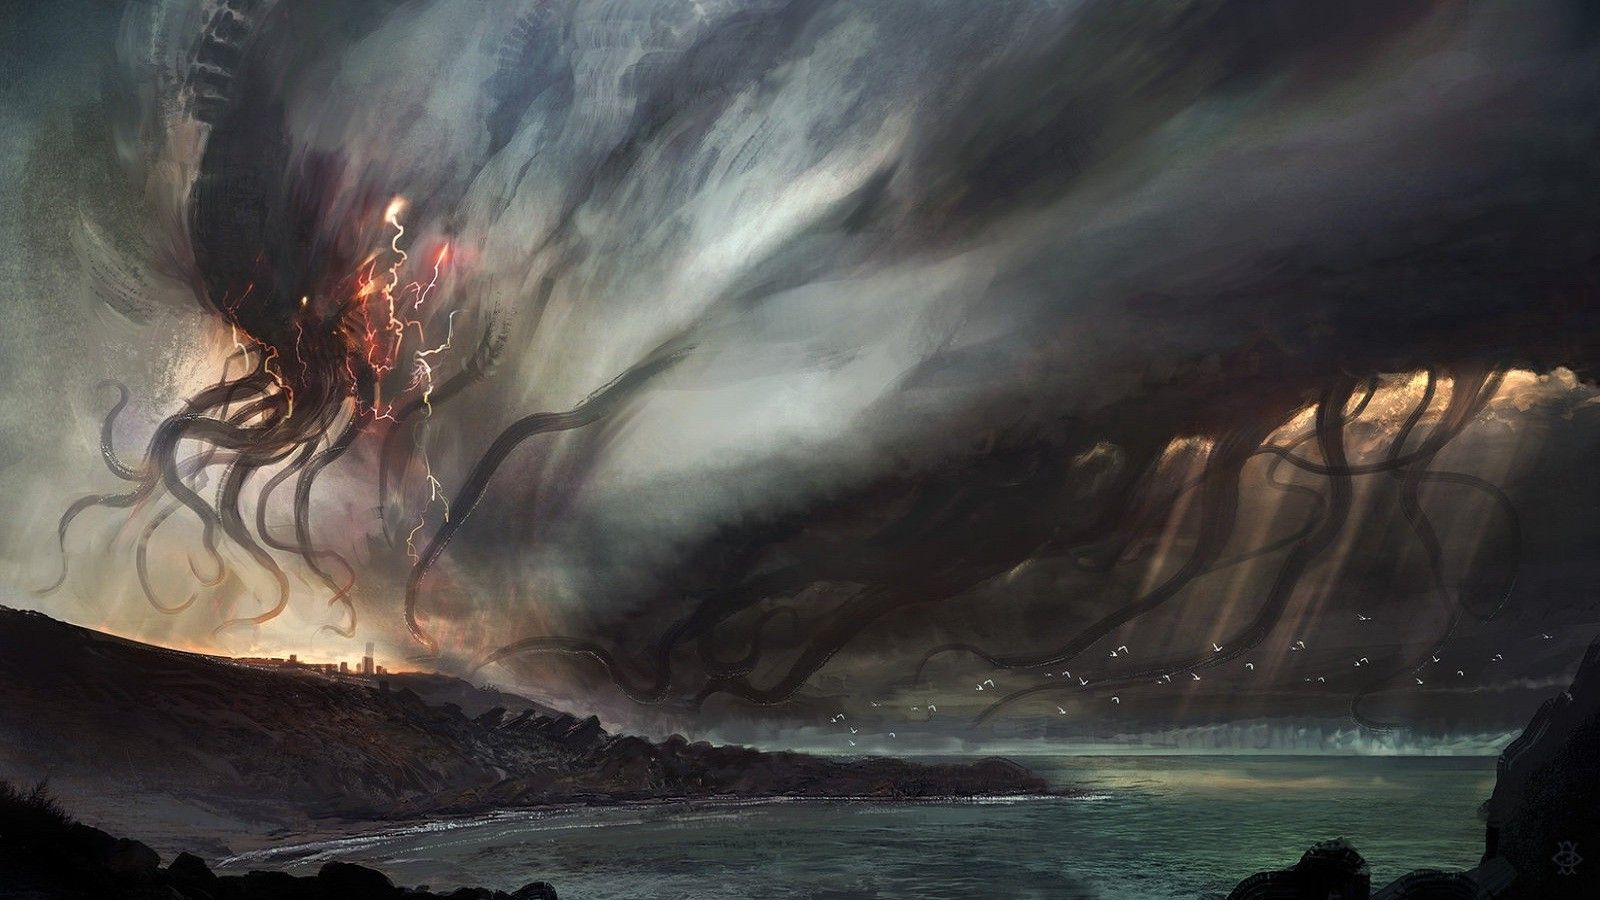 Download Hd Wallpapers Of 120599 Digital Art Painting Movies Cthulhu Creature Deviantart Free Download High Quality And Dark Fantasy Art Painting Cthulhu